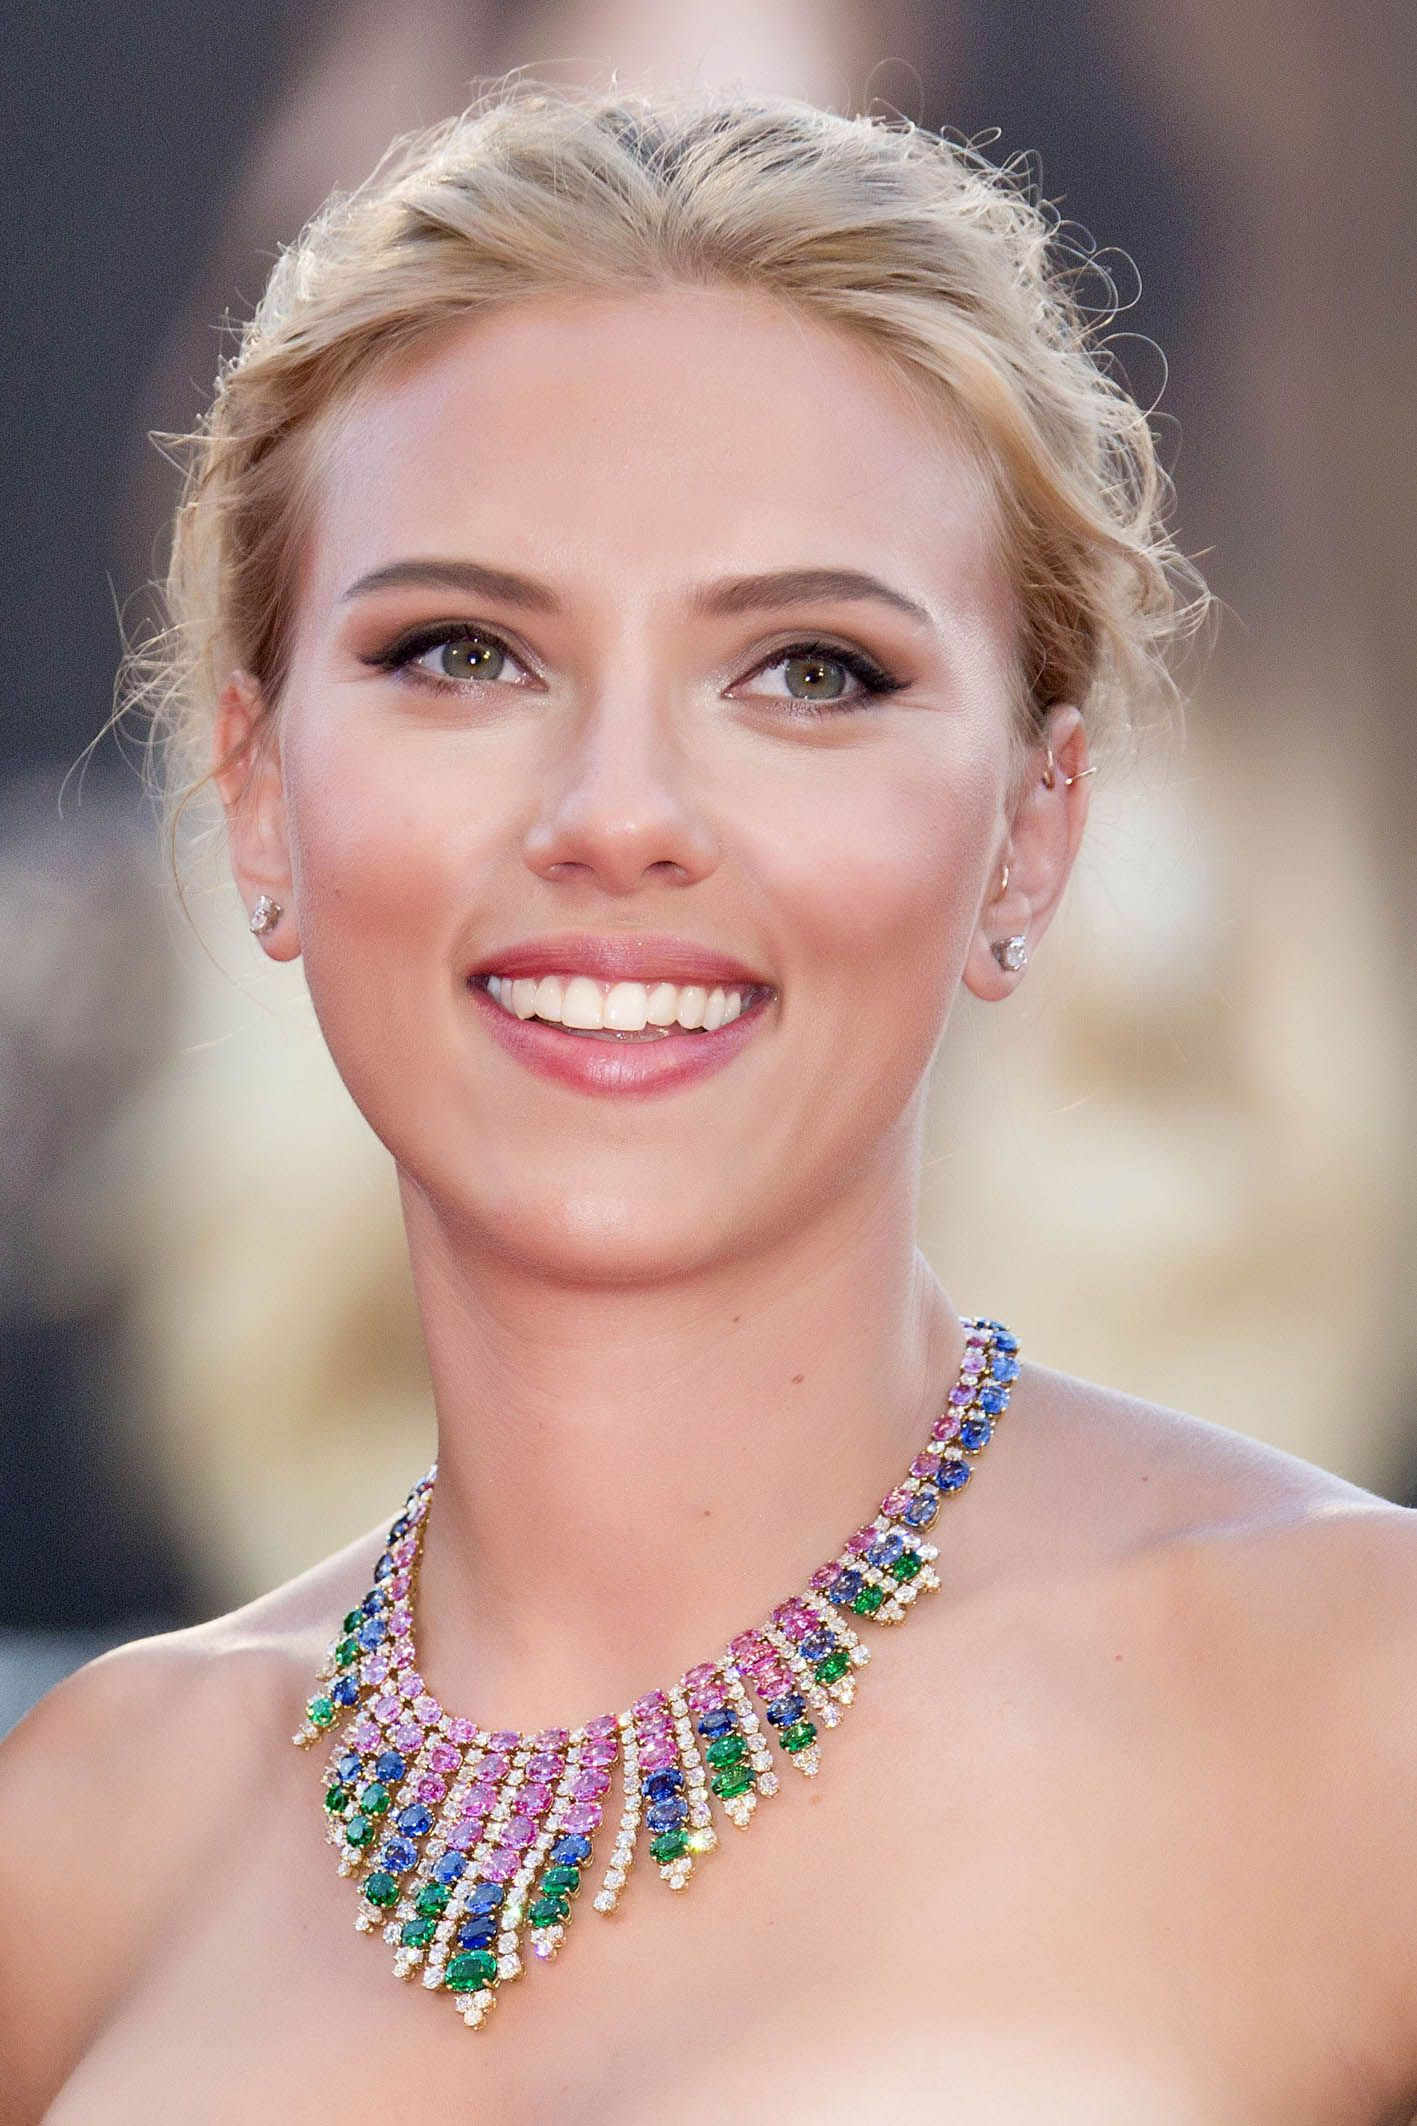 Scarlett Johansson - so much old-style movie star quality! | art ...